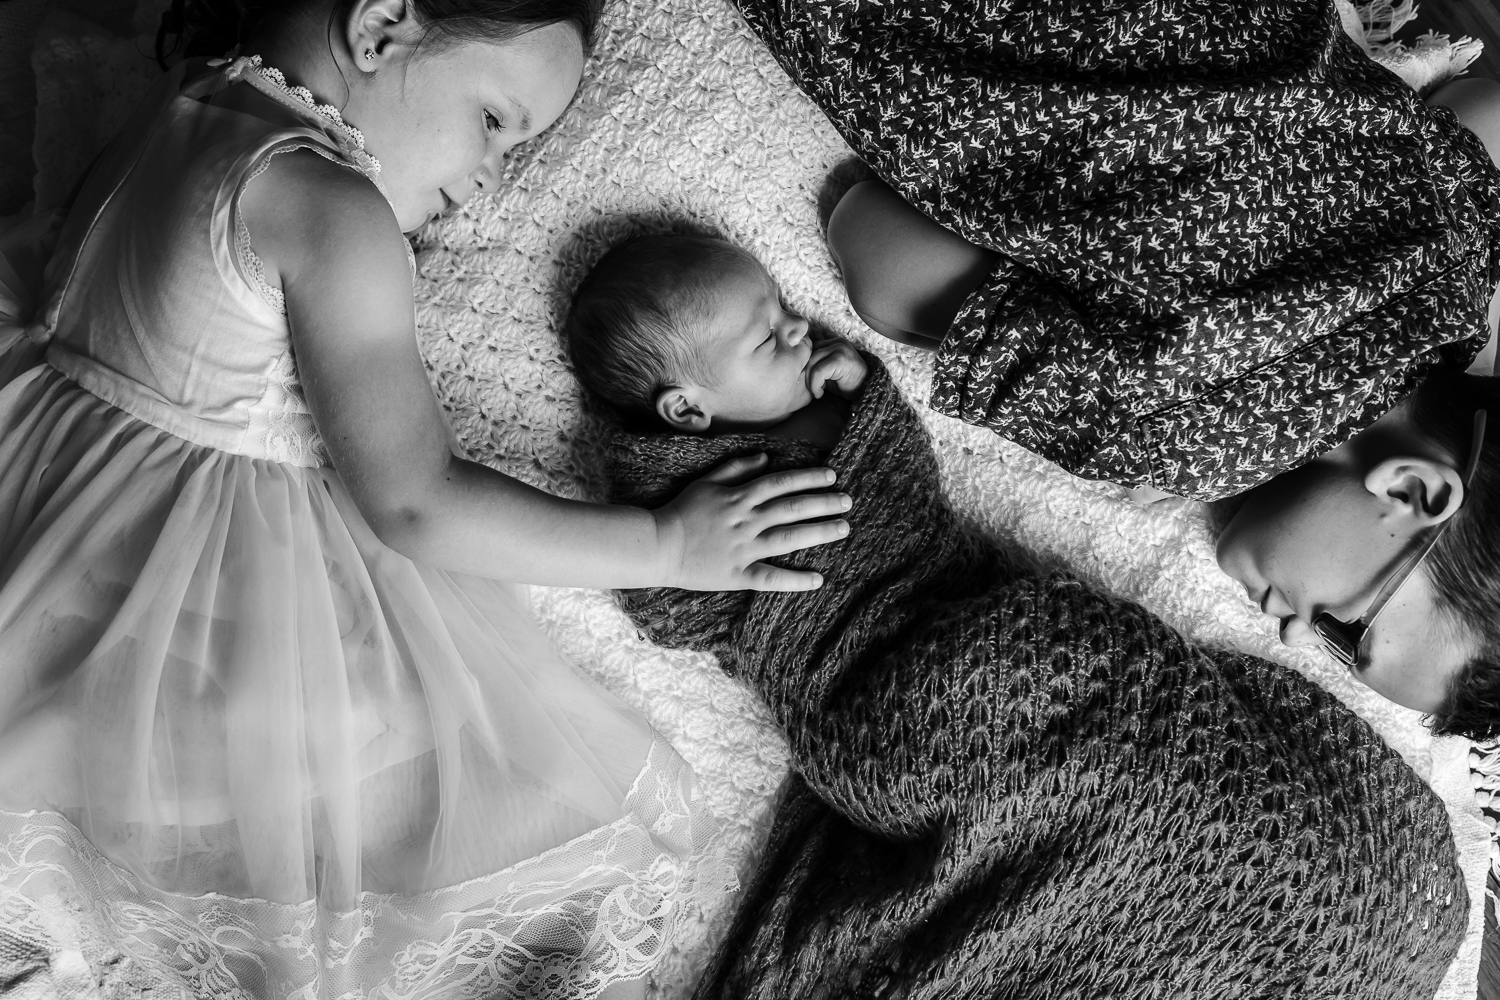 siblings captured in black and white during newborn lifestyle session at Mornington location